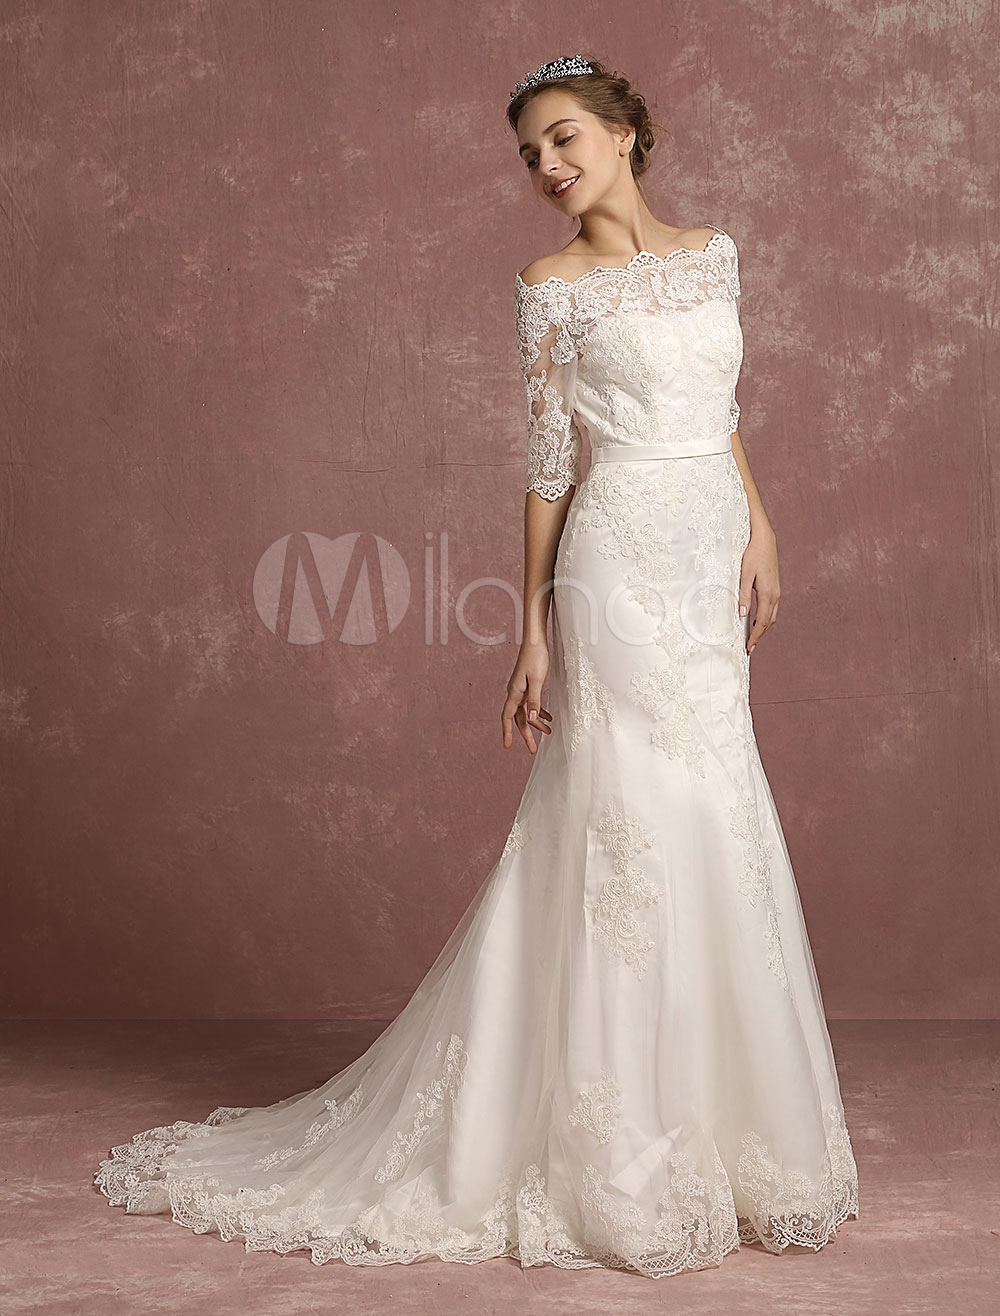 Mermaid Wedding Dress Lace Half Sleeve Bridal Gown Bateau Beaded Ivory Bridal Dress With Chapel Train